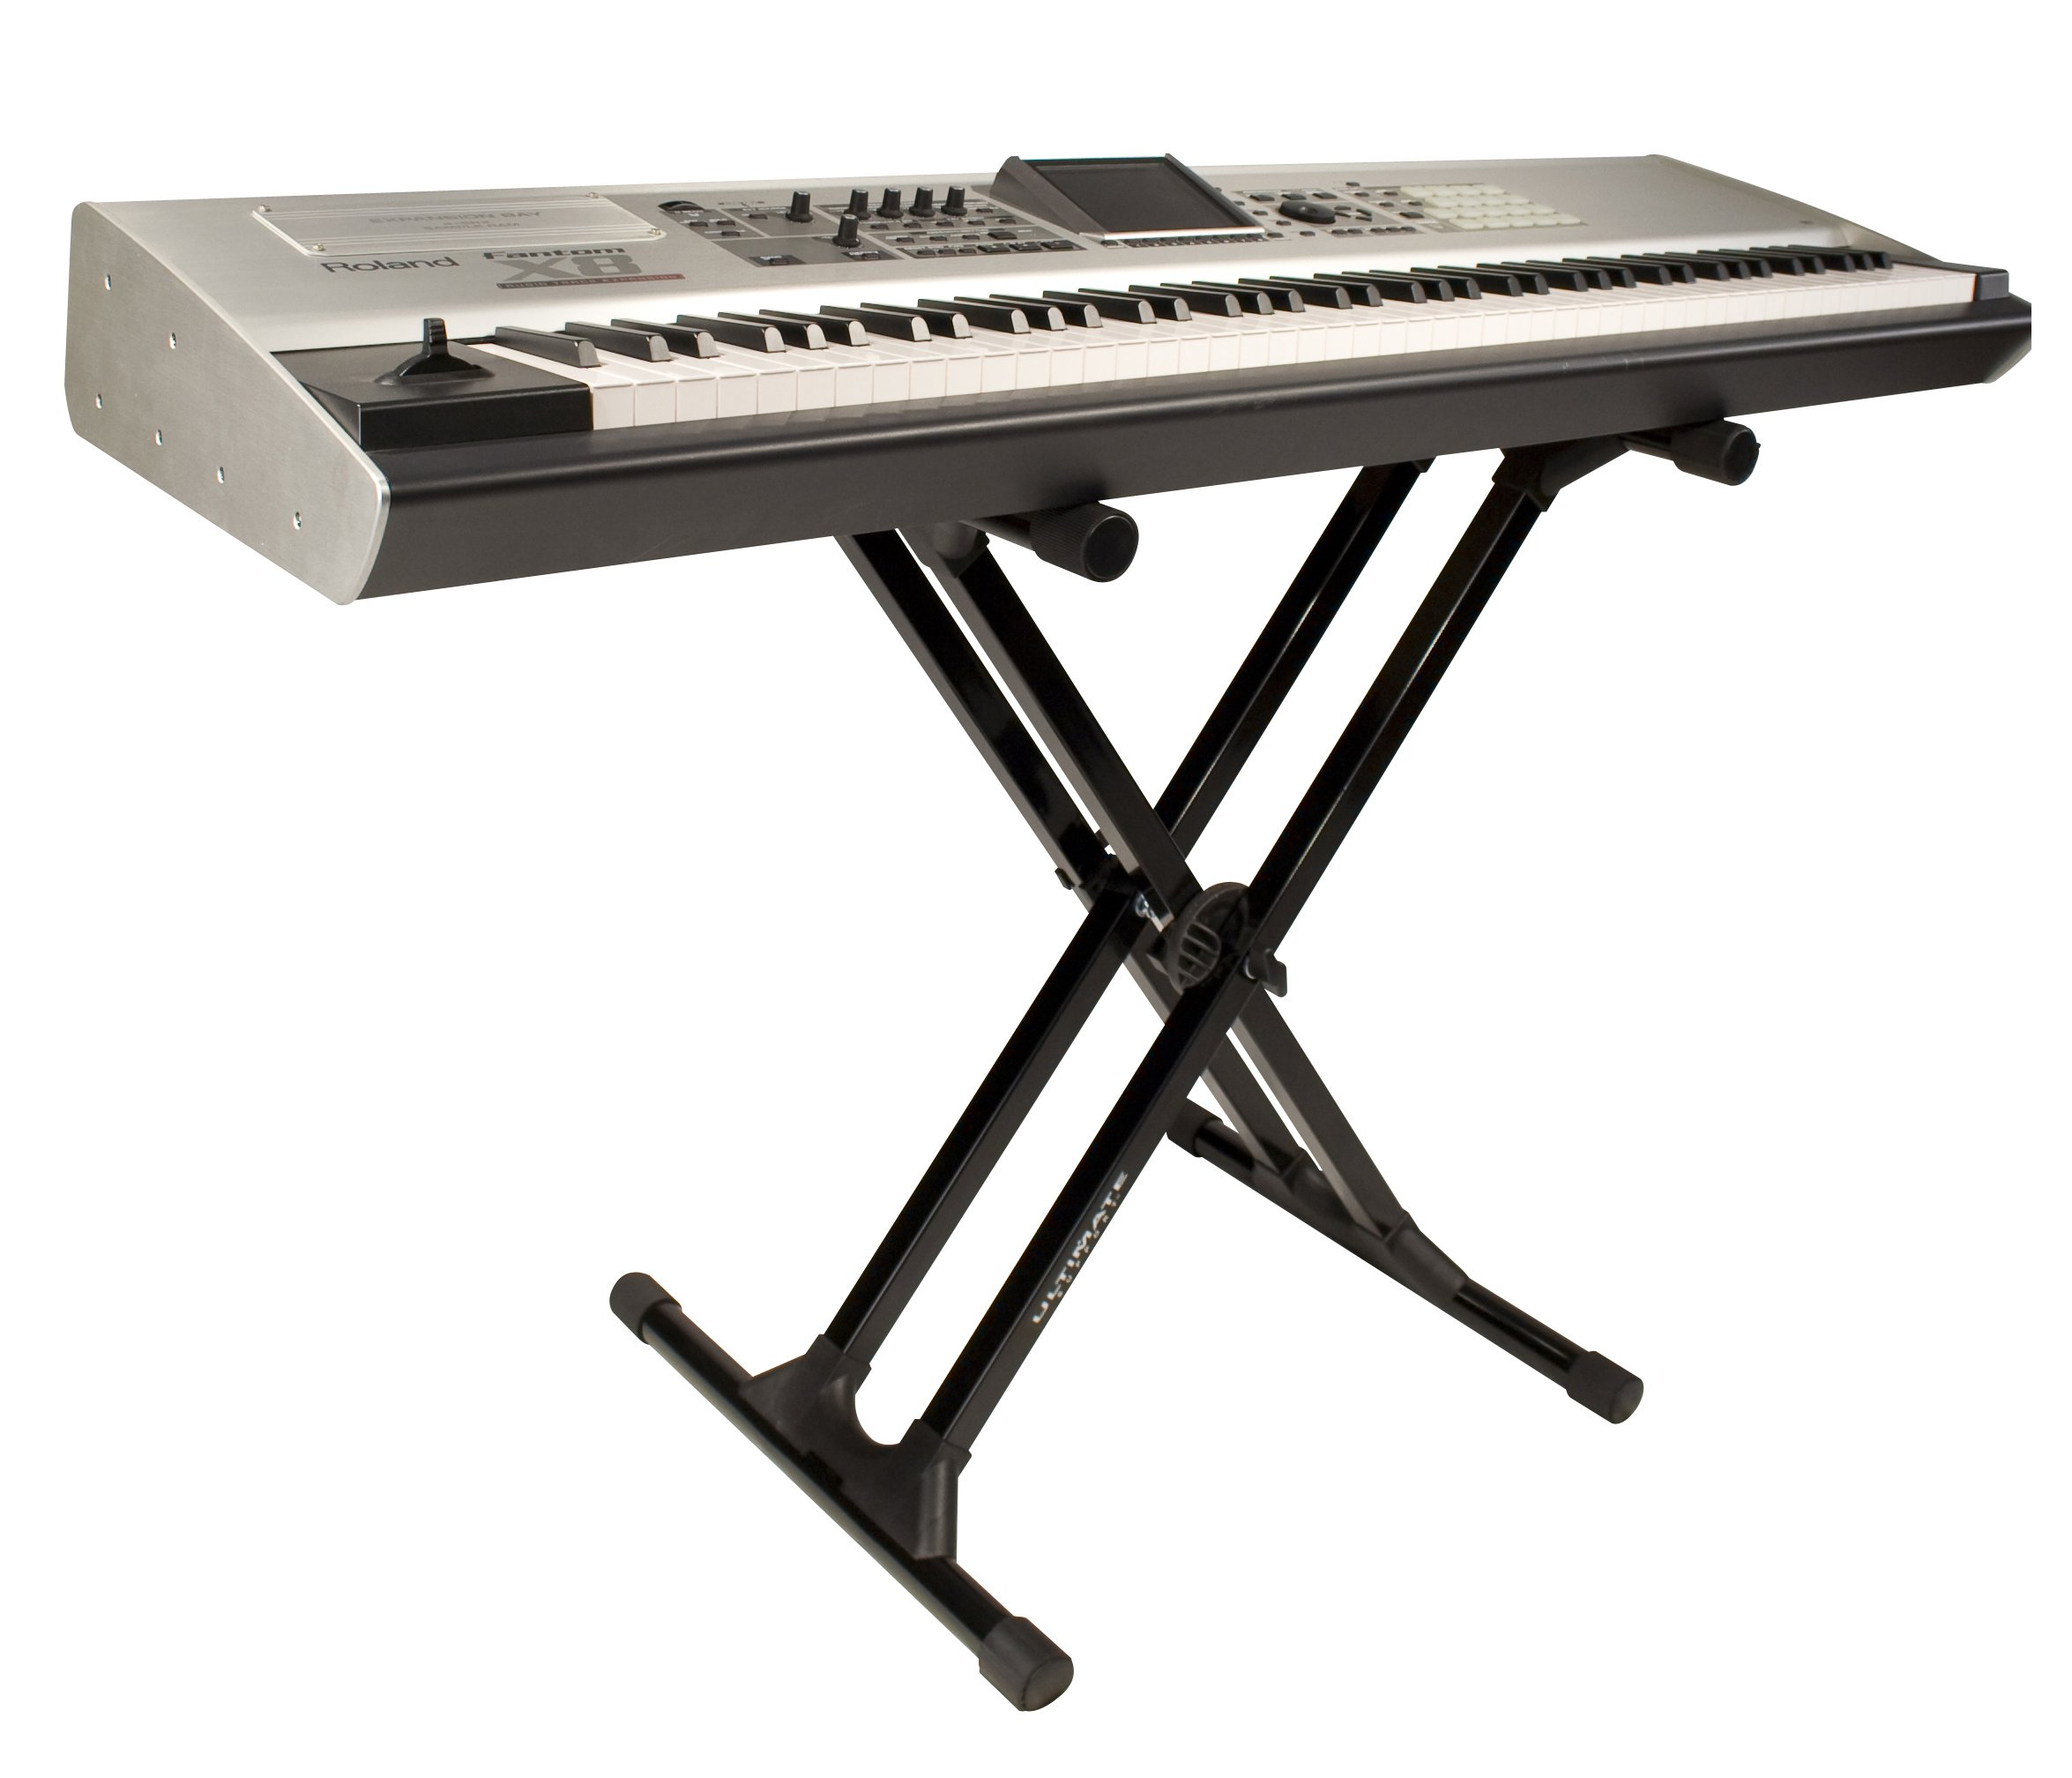 Ultimate Support IQ-3000 X-style Keyboard Stand with Nine Height Settings, Stabilizing End Caps, and Extra-strength Tubing